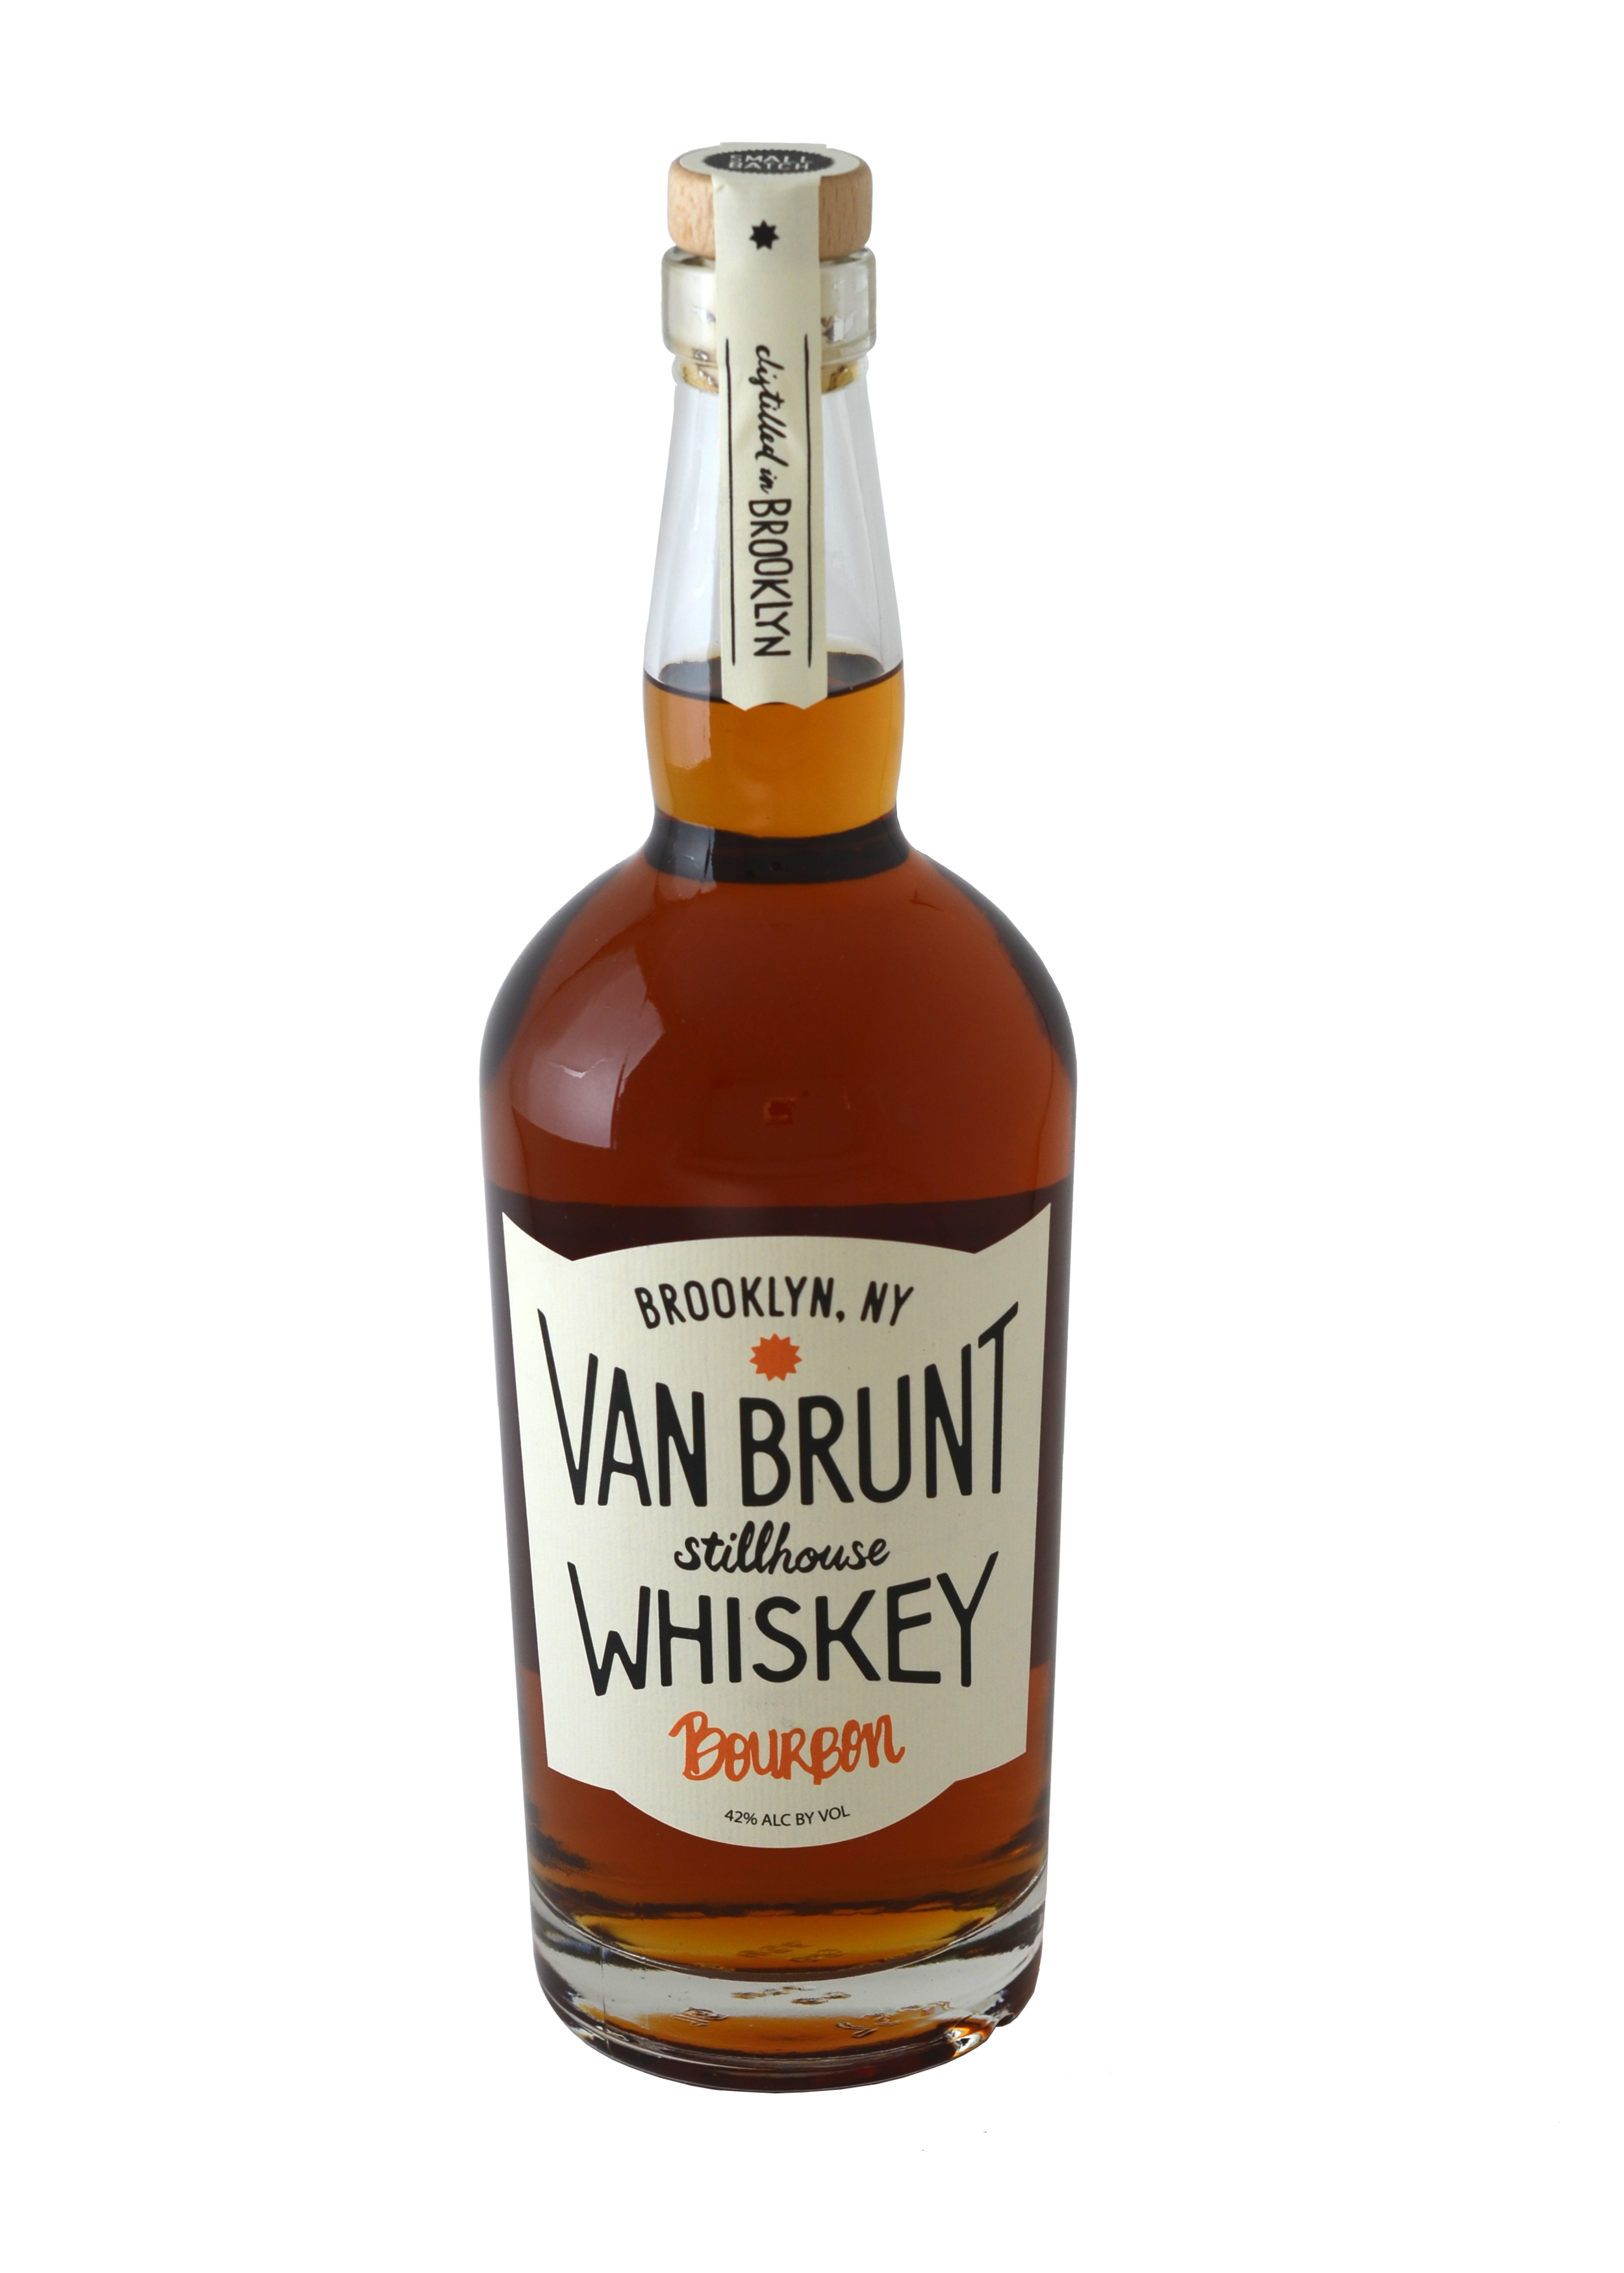 VBS  Bourbon  is a four grain wheated bourbon distilled from New York corn. Bold and full bodied with notes of chocolate, butterscotch, sweet cream and banana, finishing smooth with hints of spice pepper, maple, nuts and coffee.